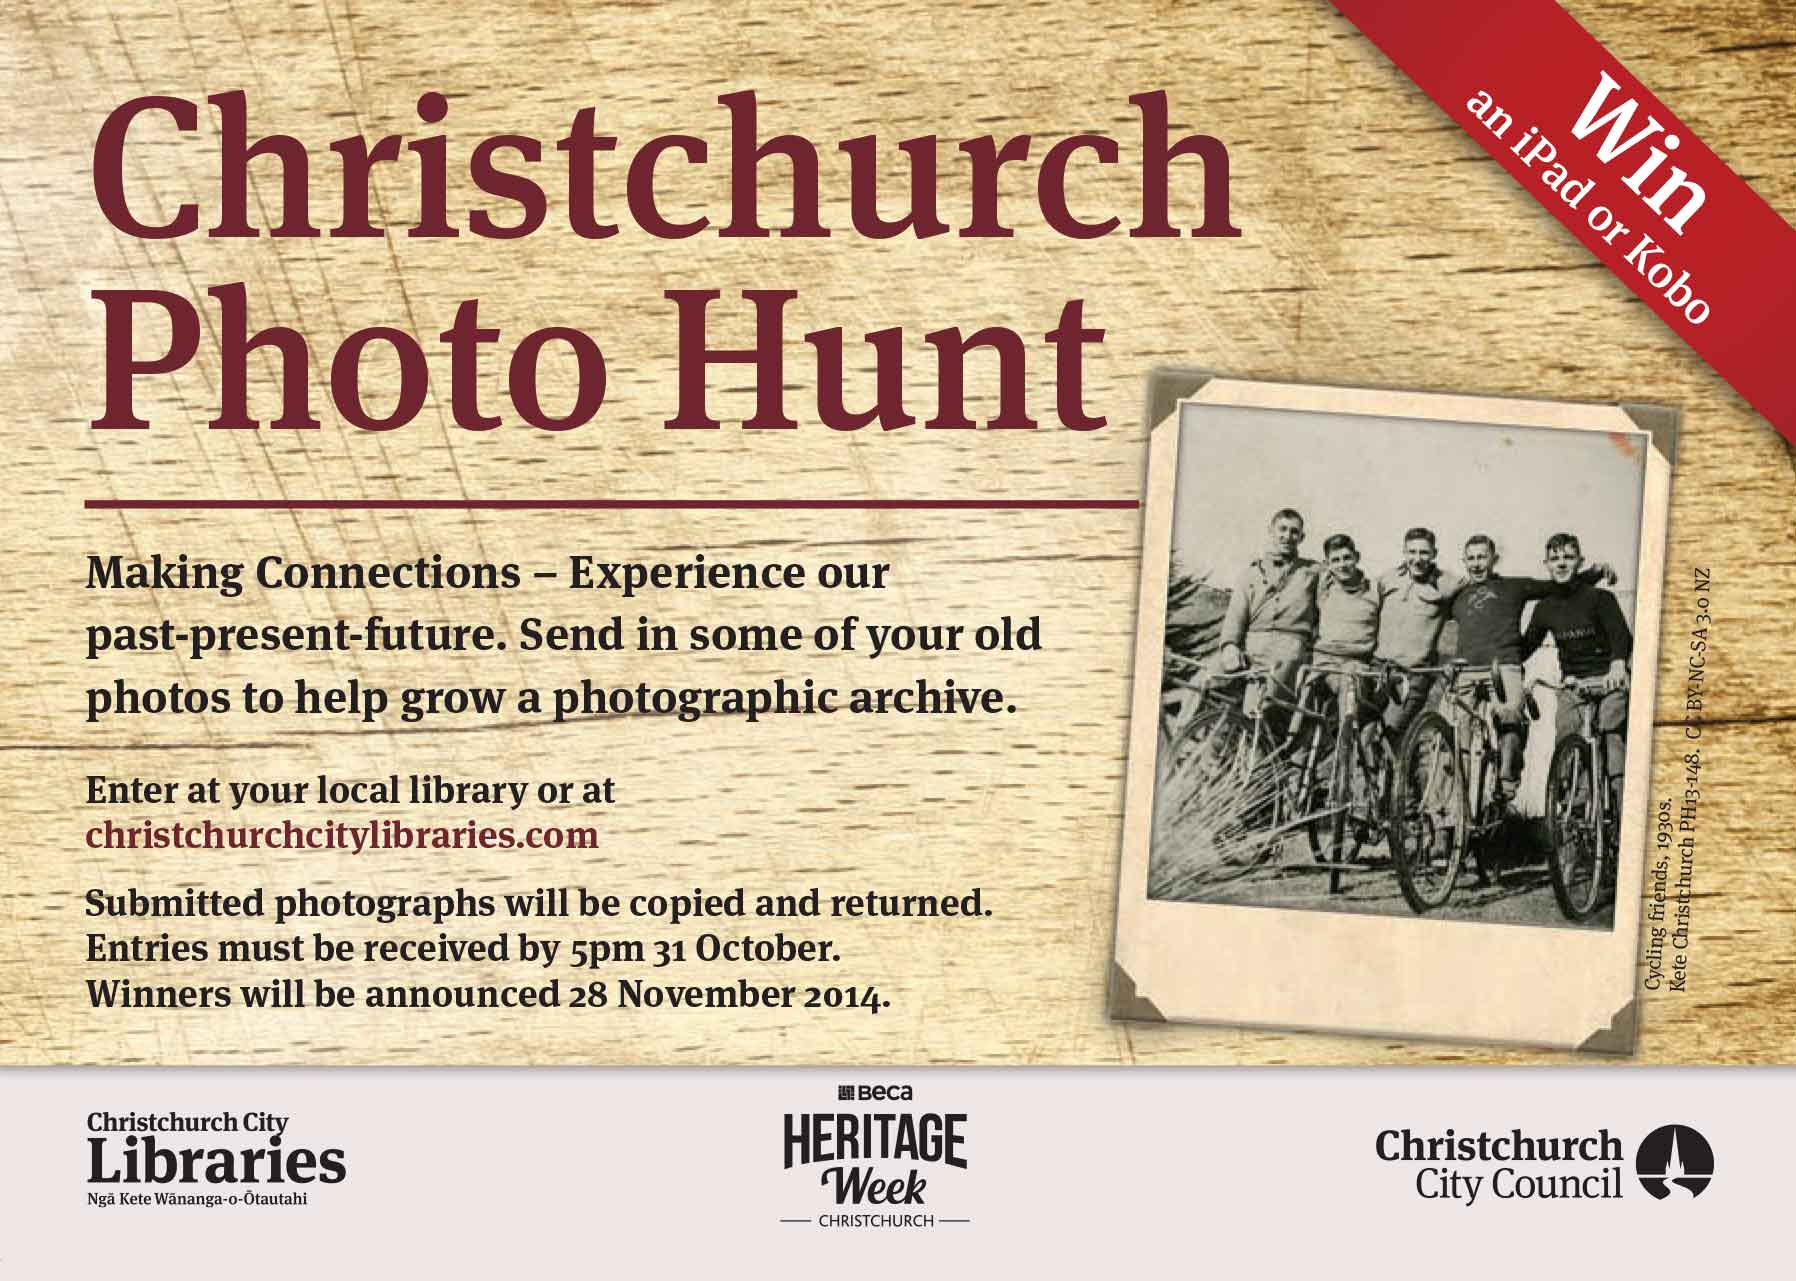 Chrstchurch Photo Hunt 2014 Flyer